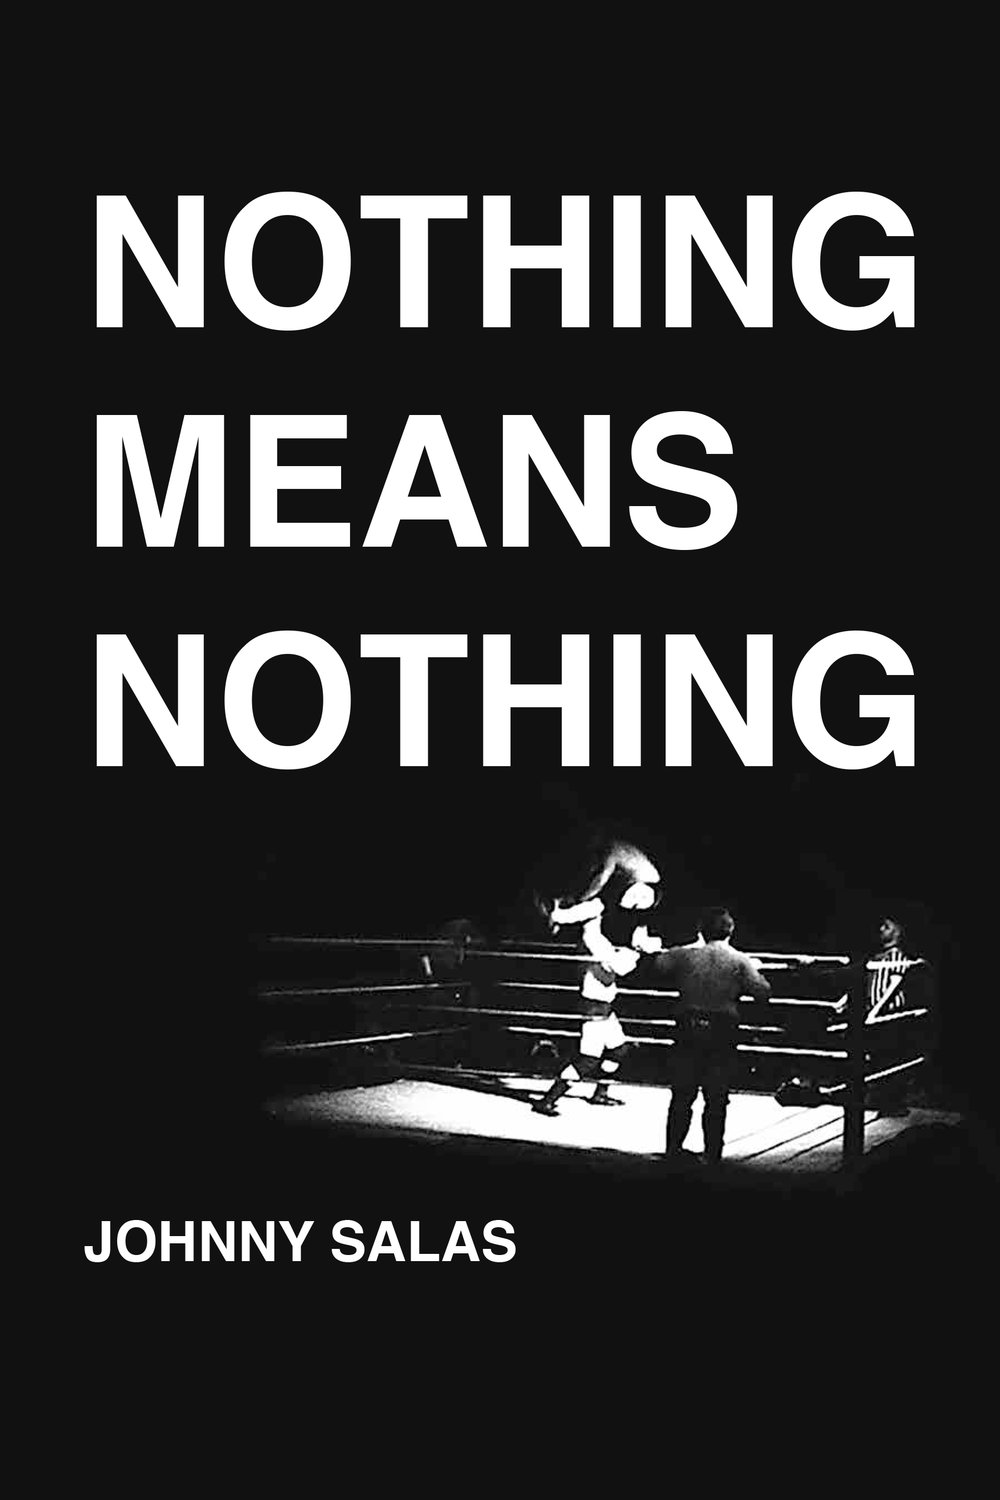 Sneak Peek    Johnny Salas stands ringside and captures the beauty, rawness, and absurdity of Phoenix's semi-professional wrestling scene. His poetic noir photographs are intense, empathetic works that honor the sport as only a true fan could.